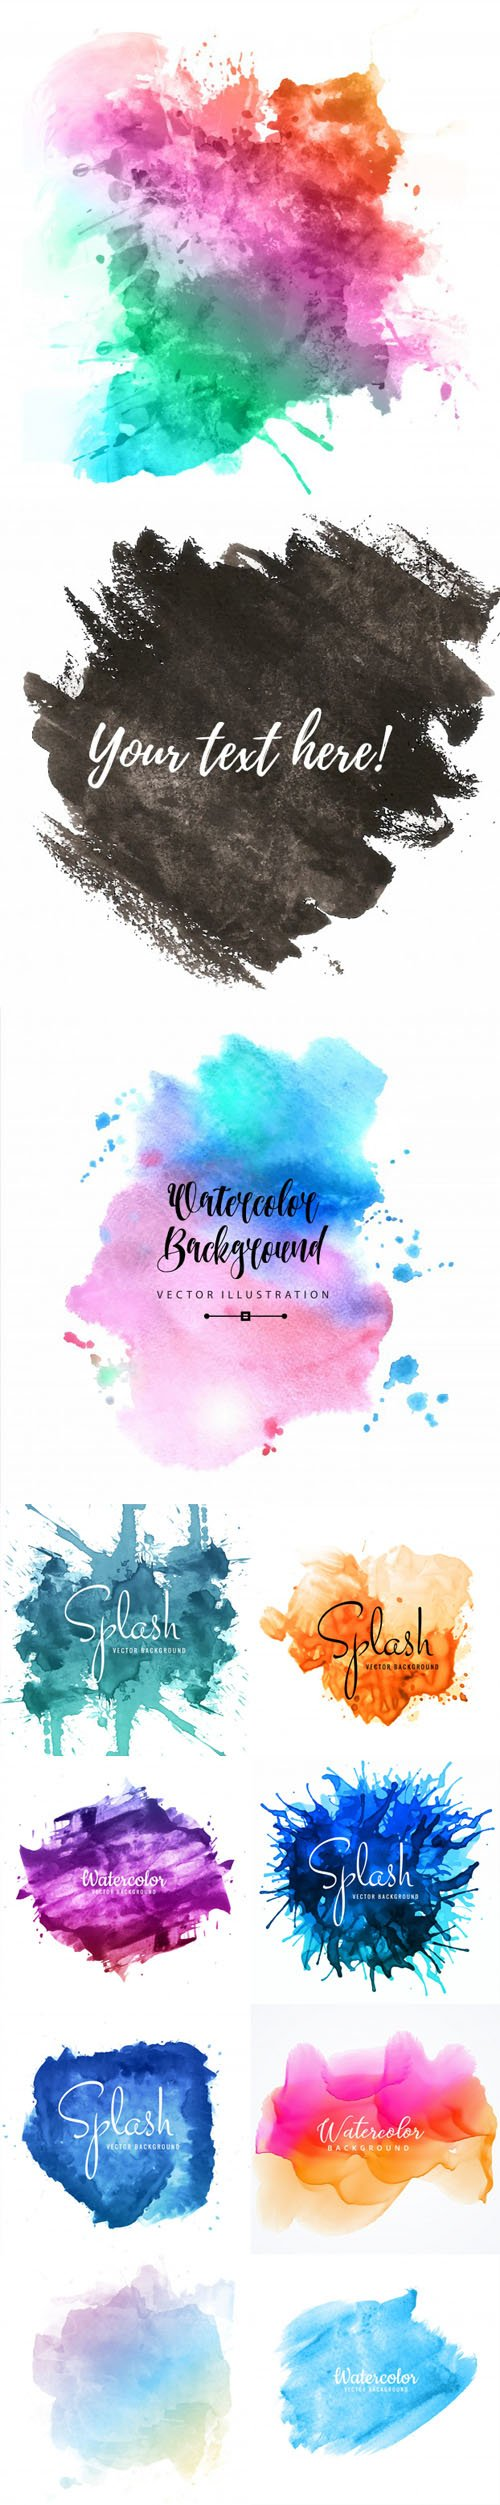 11 Splash & Watercolor Brush Stroke Designs Vector